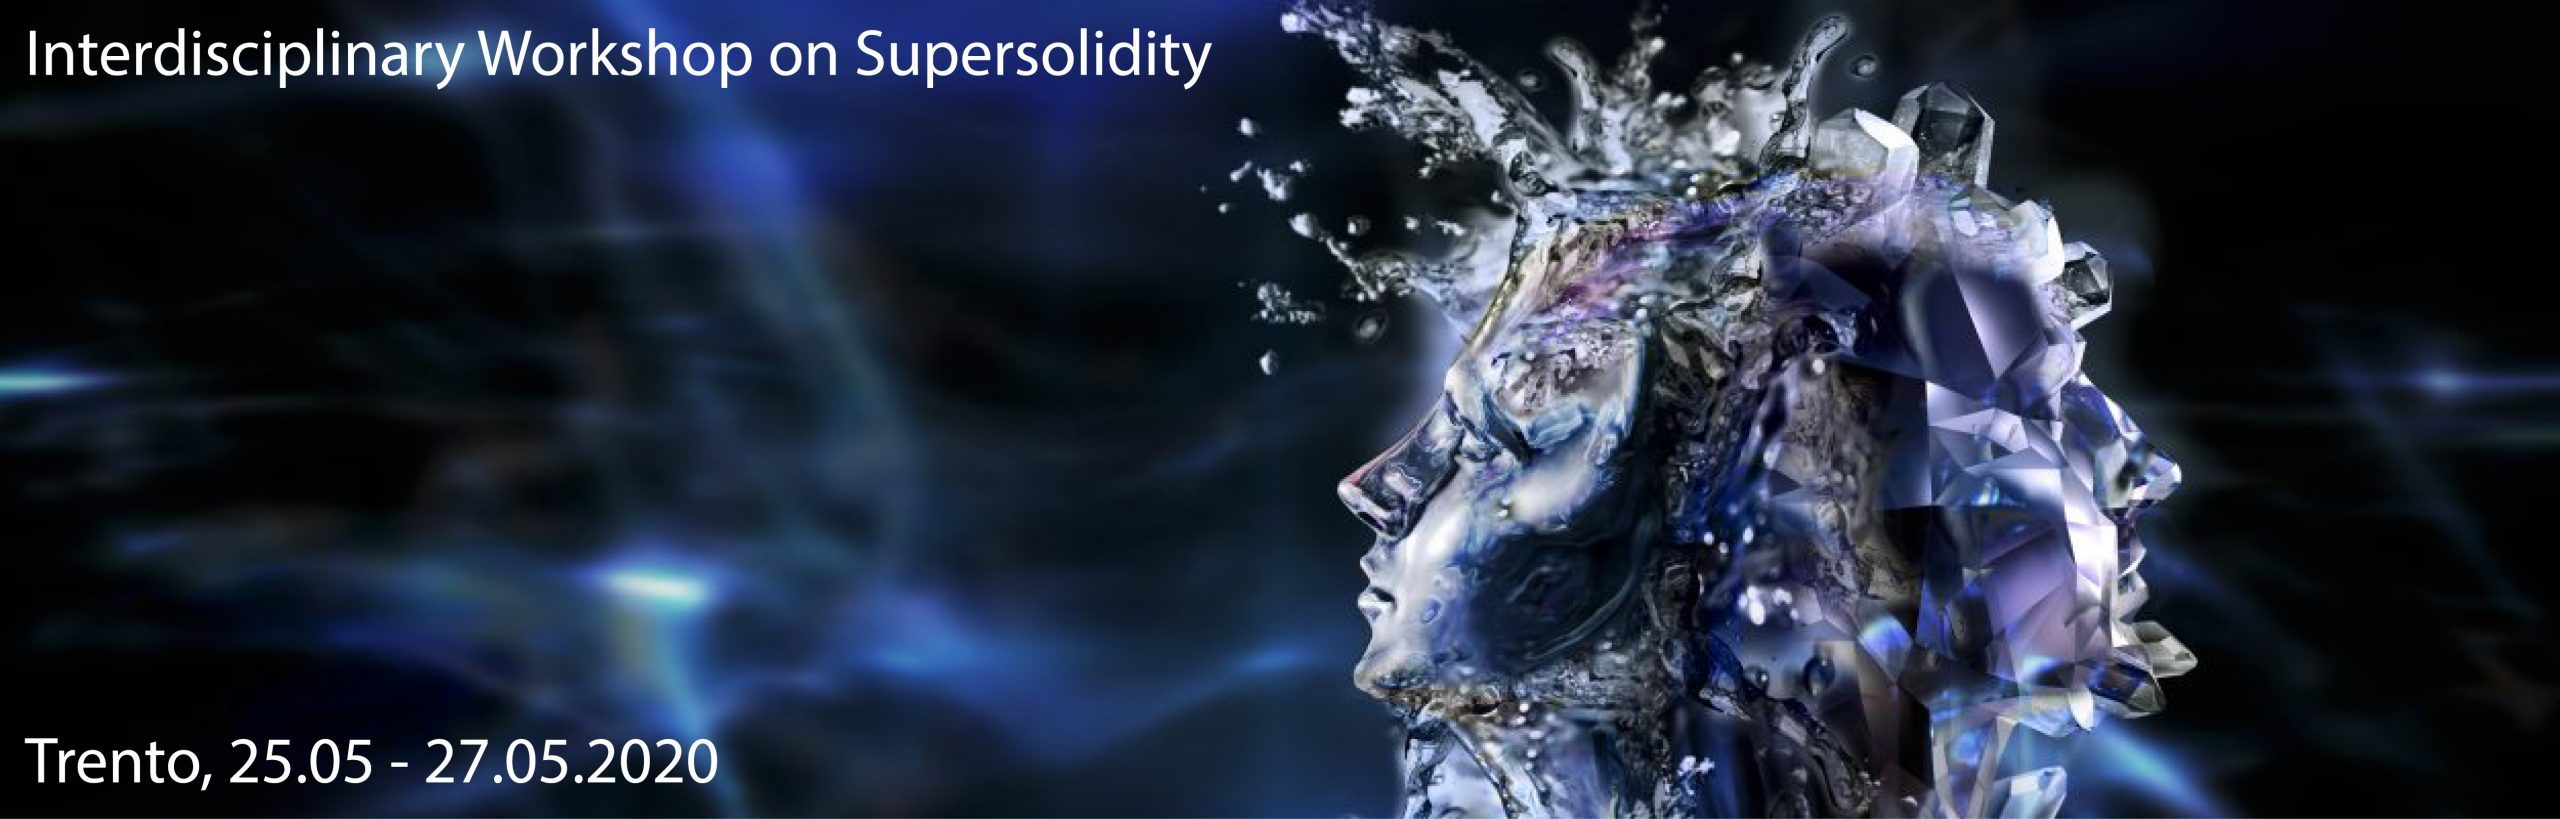 Interdisciplinary Workshop on Supersolidity